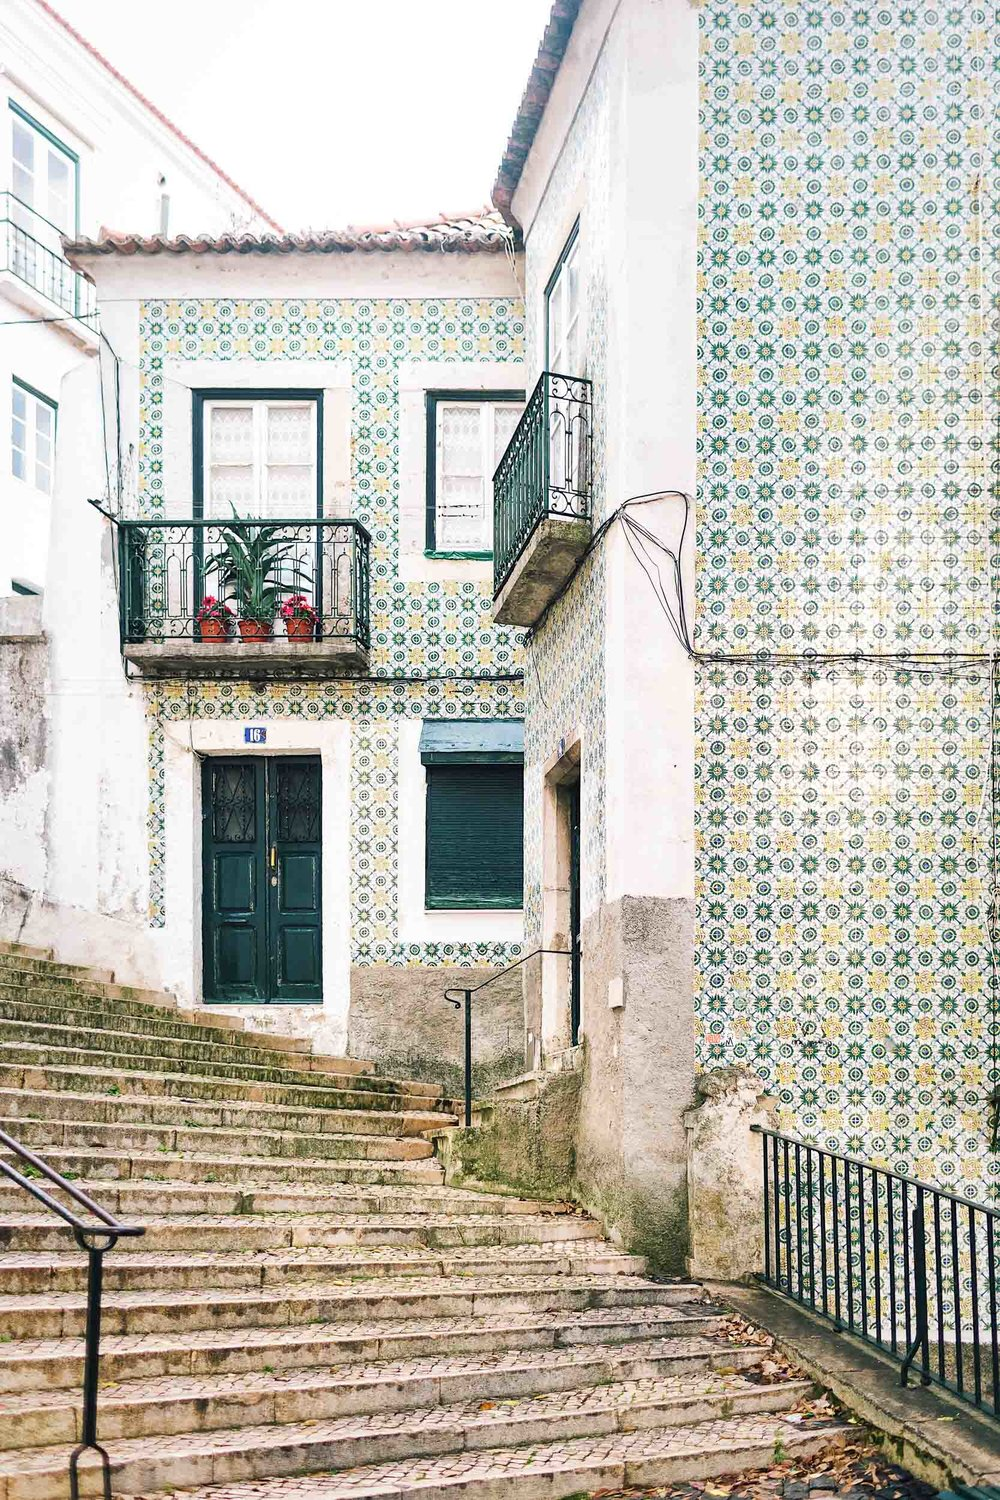 Getting lost in Alfama in Lisbon